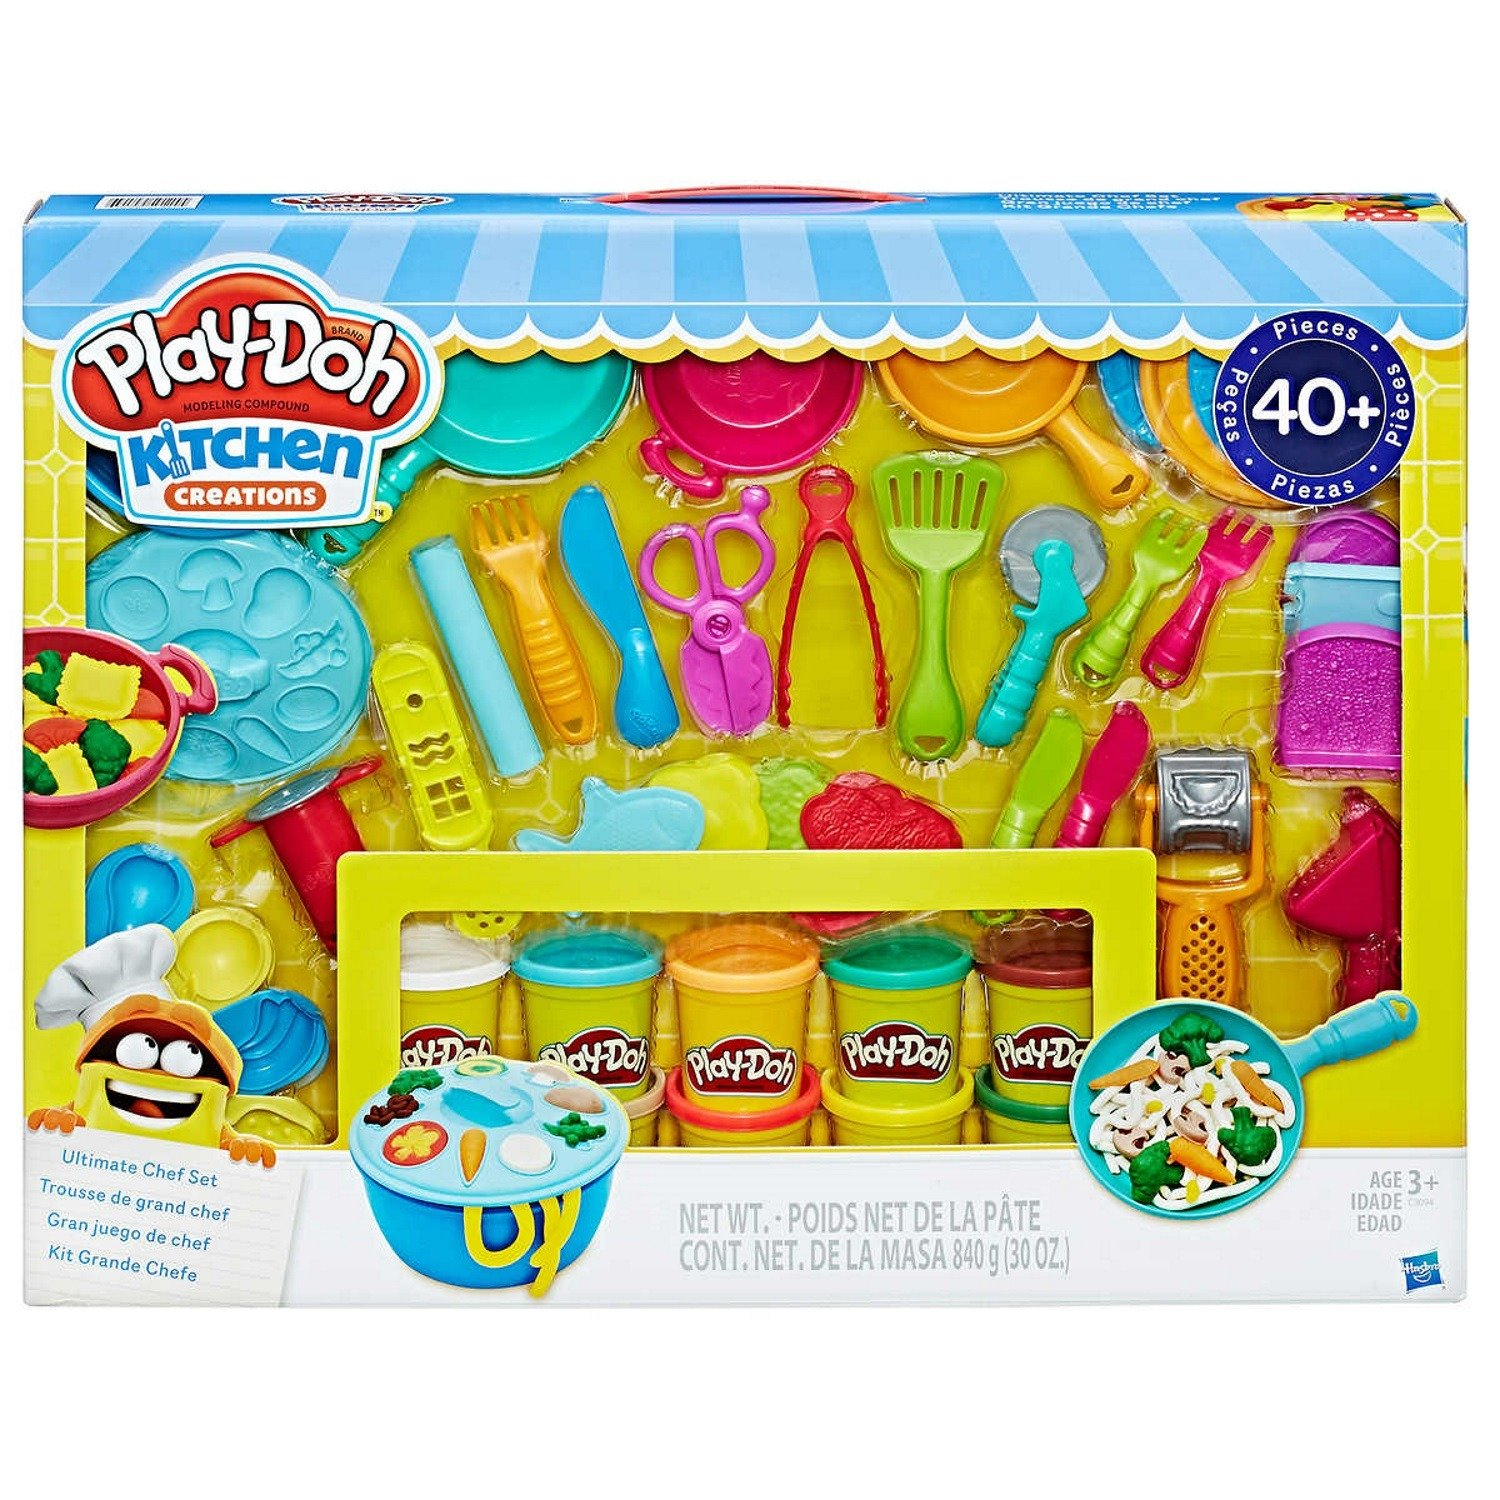 Buy Play Doh Kitchen Creations Ultimate Chef Set Create And Make Meals With Play Doh Kitchen Tools 40 Pieces 10 Cans Of Play Doh Online At Low Prices In India Amazon In